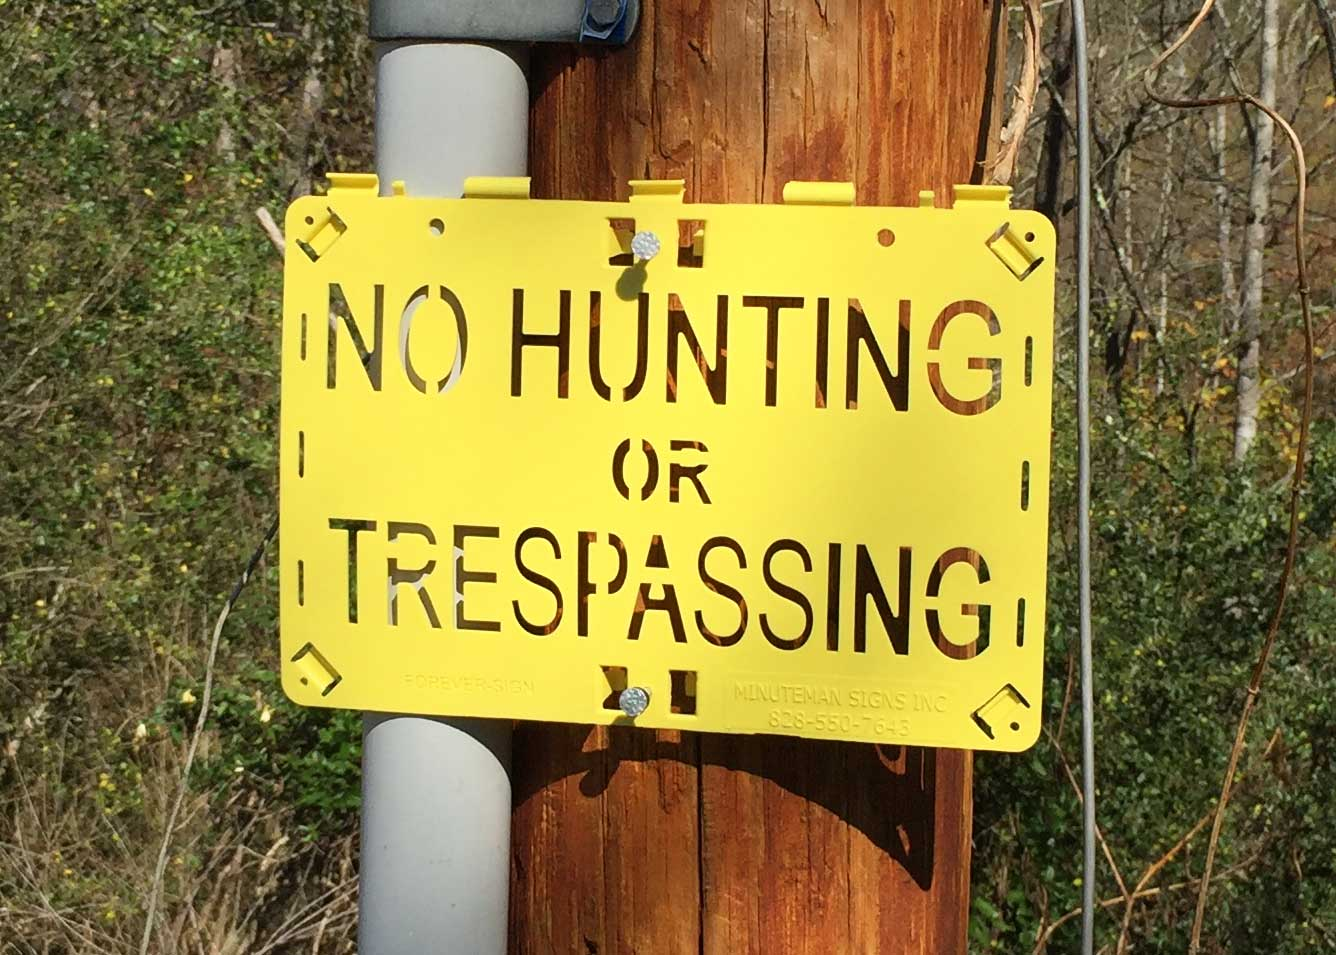 No hunting sign on pole